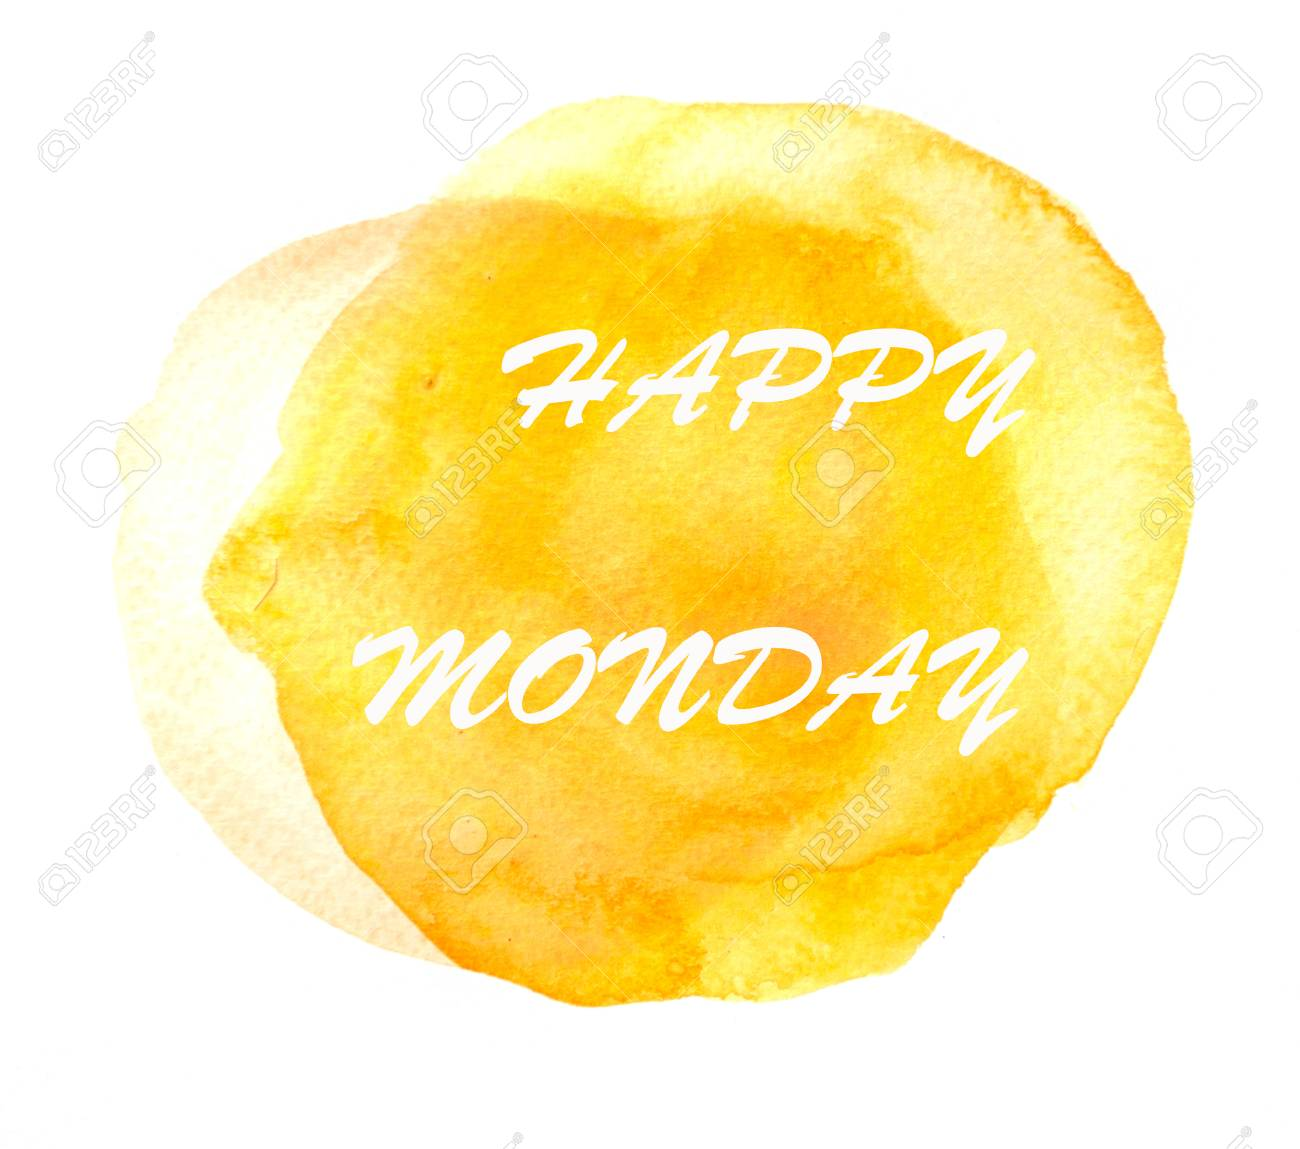 Happy Monday Text On Yellow Watercolor Circle Background Stock Photo